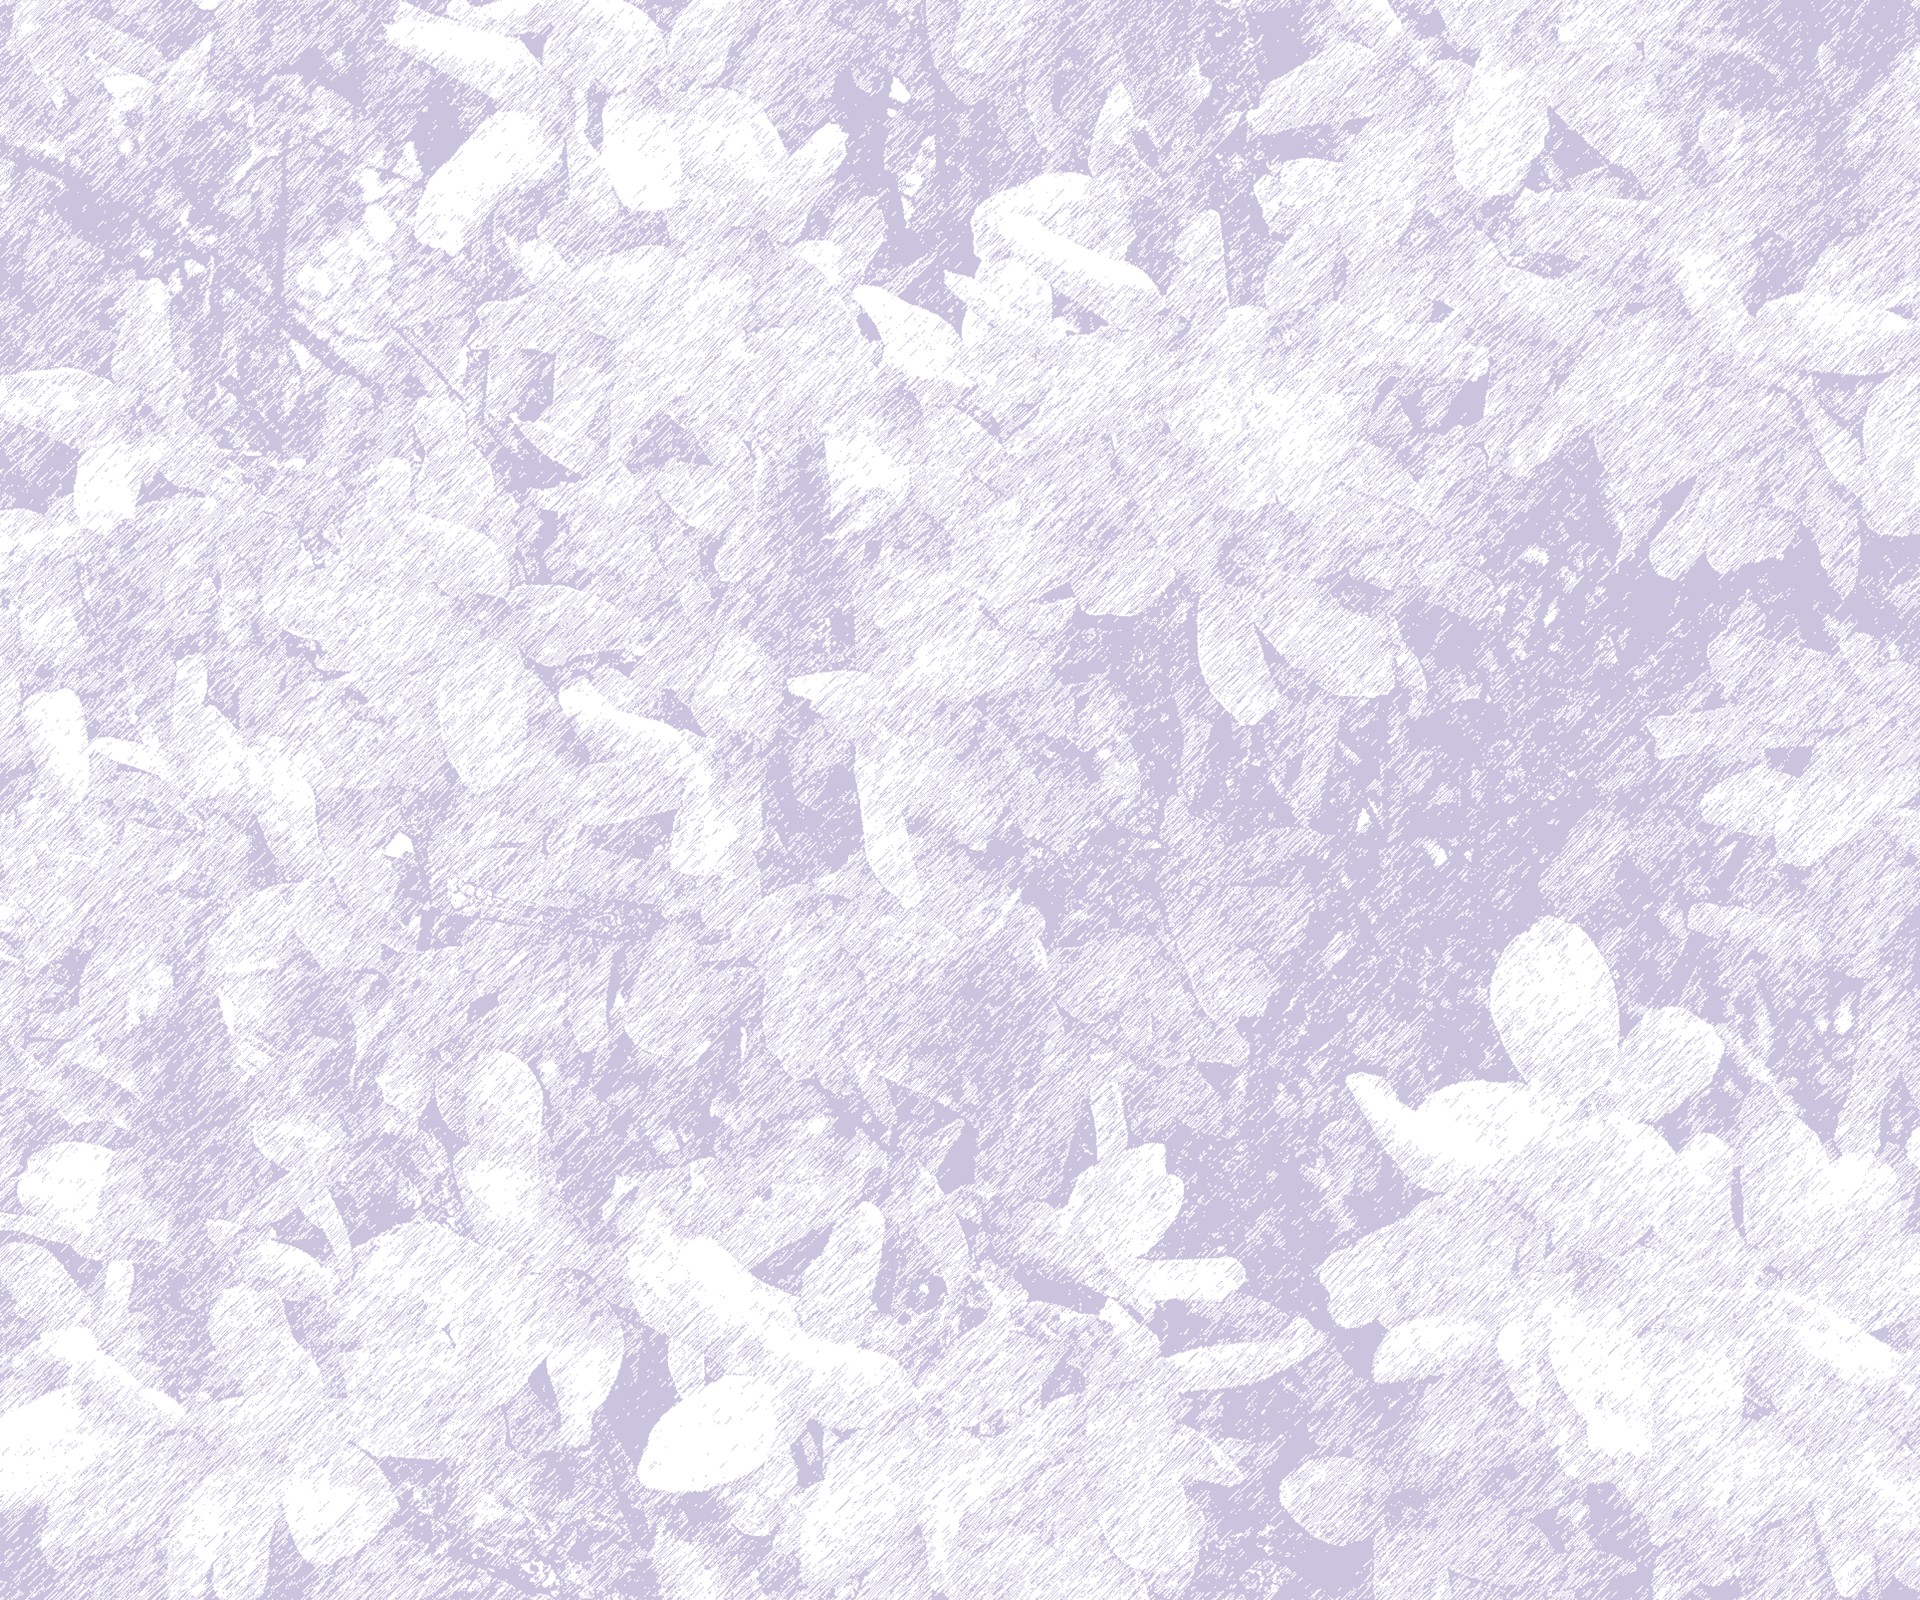 Background Purple Lilac Floral Contrast Free Image From Needpix Com